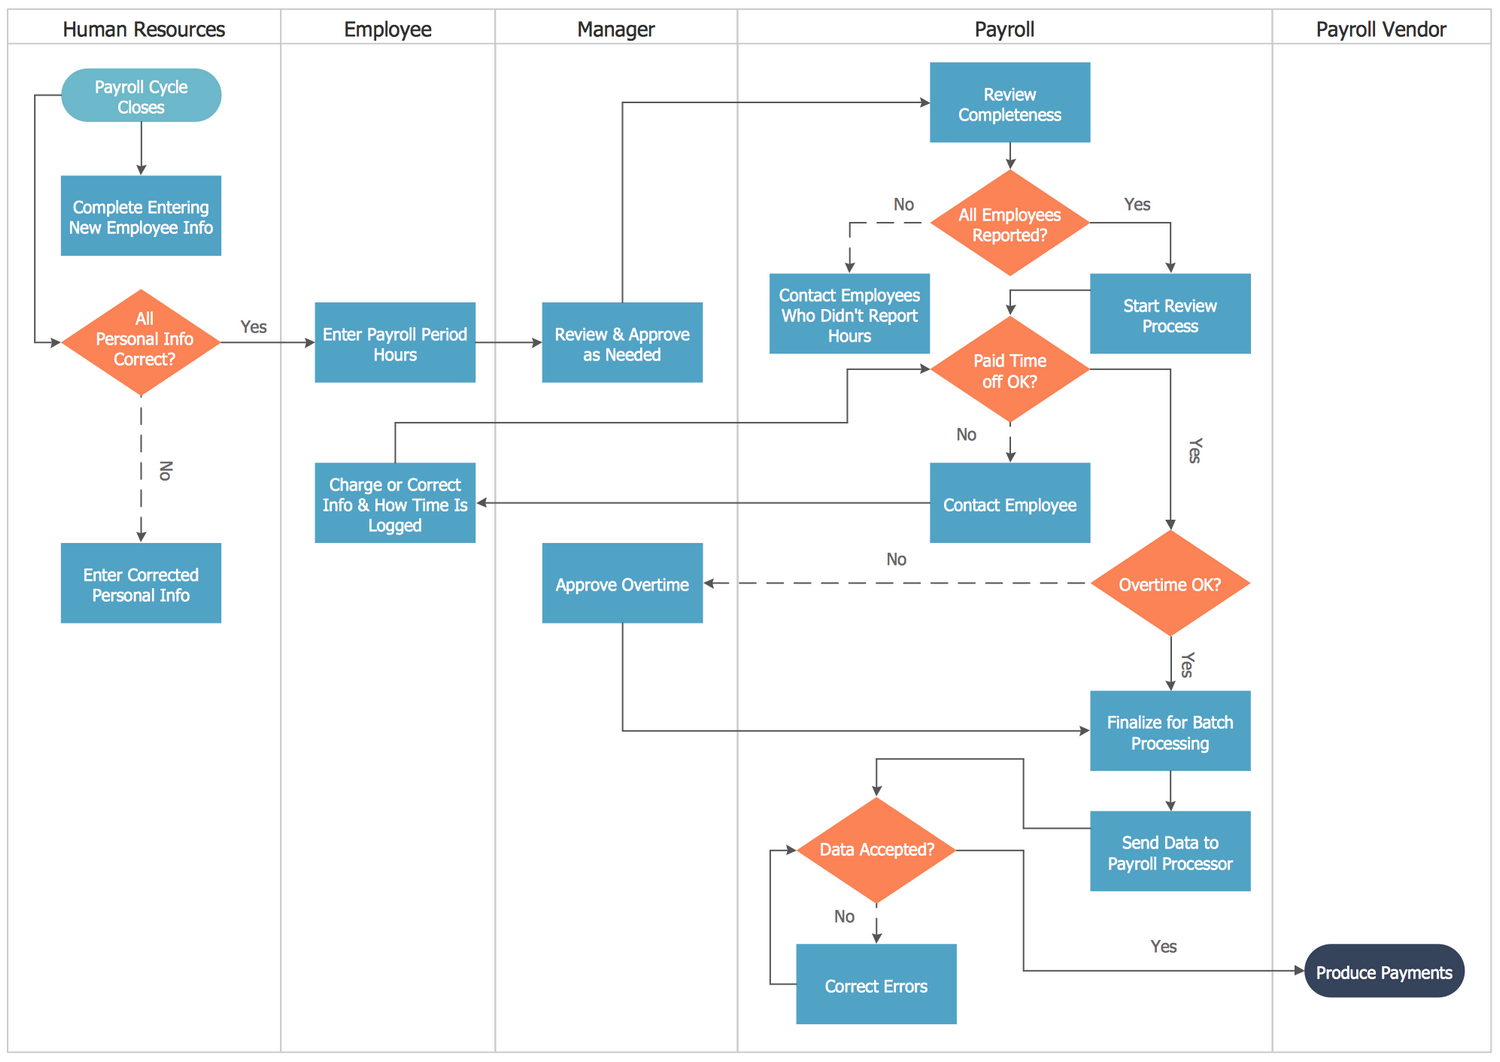 process flow diagram template excel process flow diagram online cross-functional flowcharts solution | conceptdraw.com